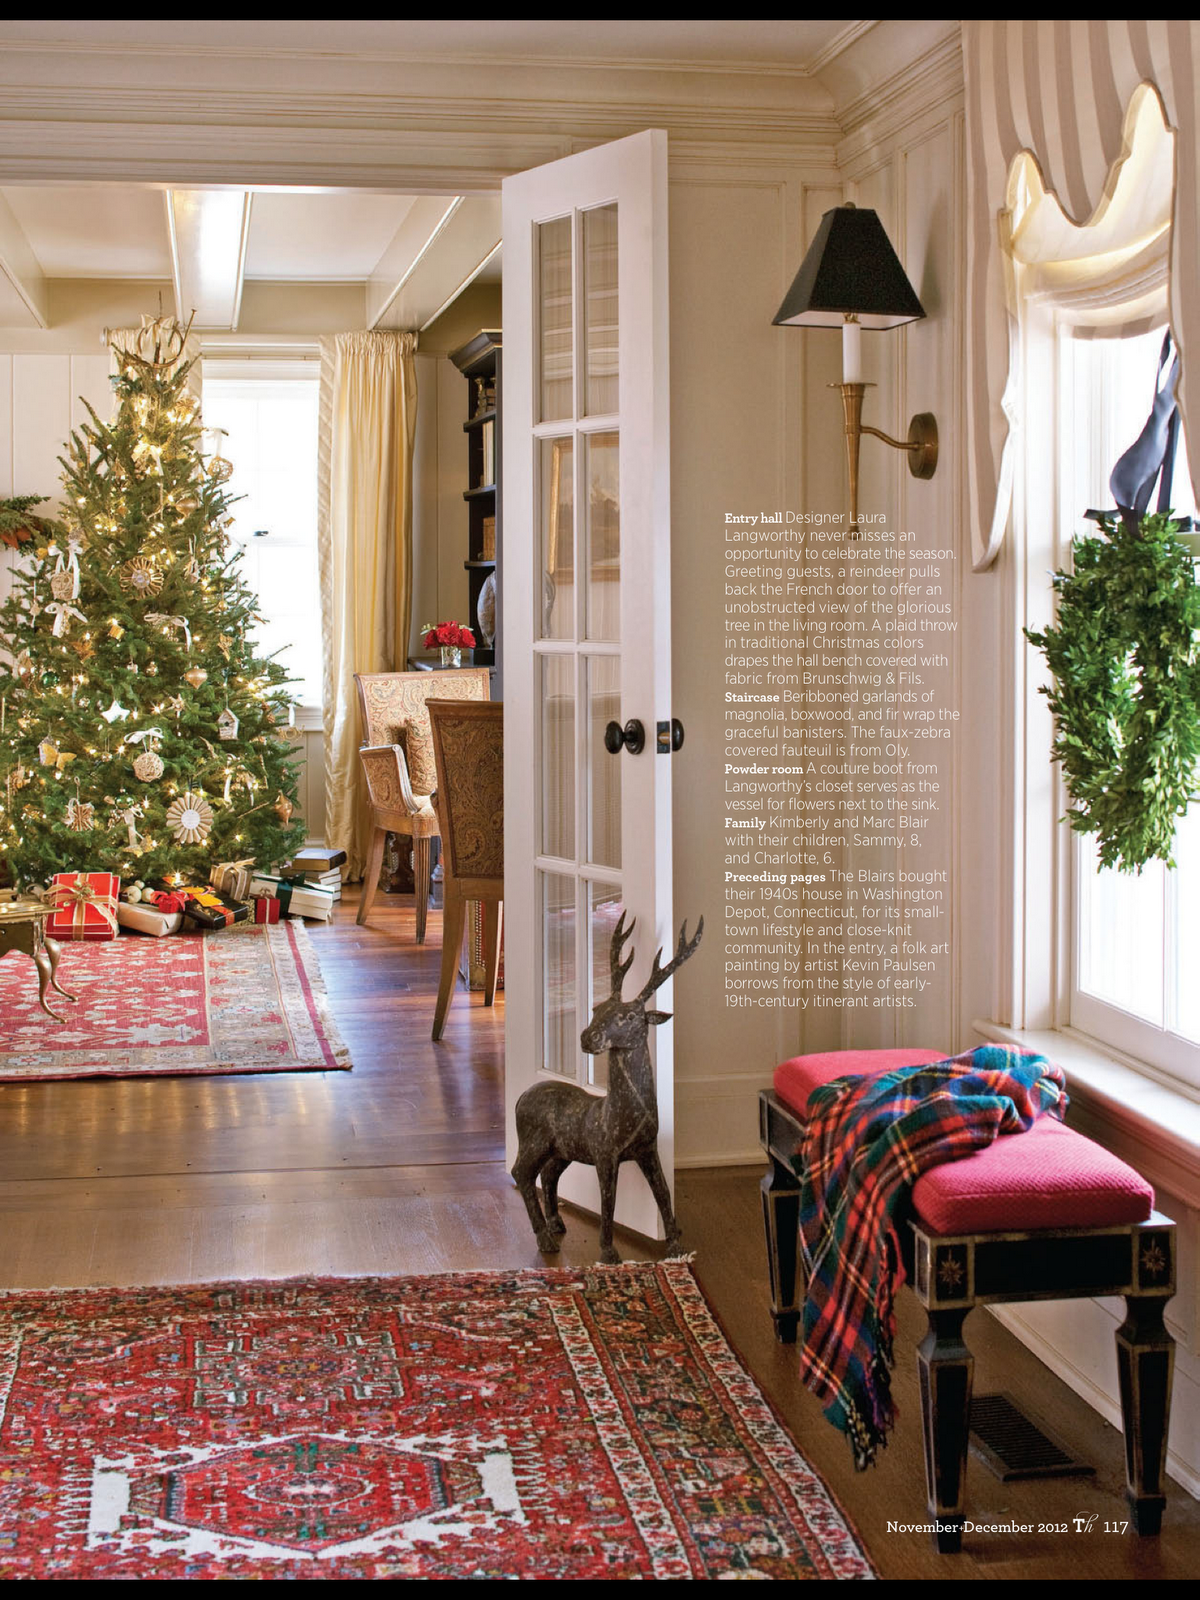 Home Decor Interior Design: Home Design Interior: New England Design: Holiday Style